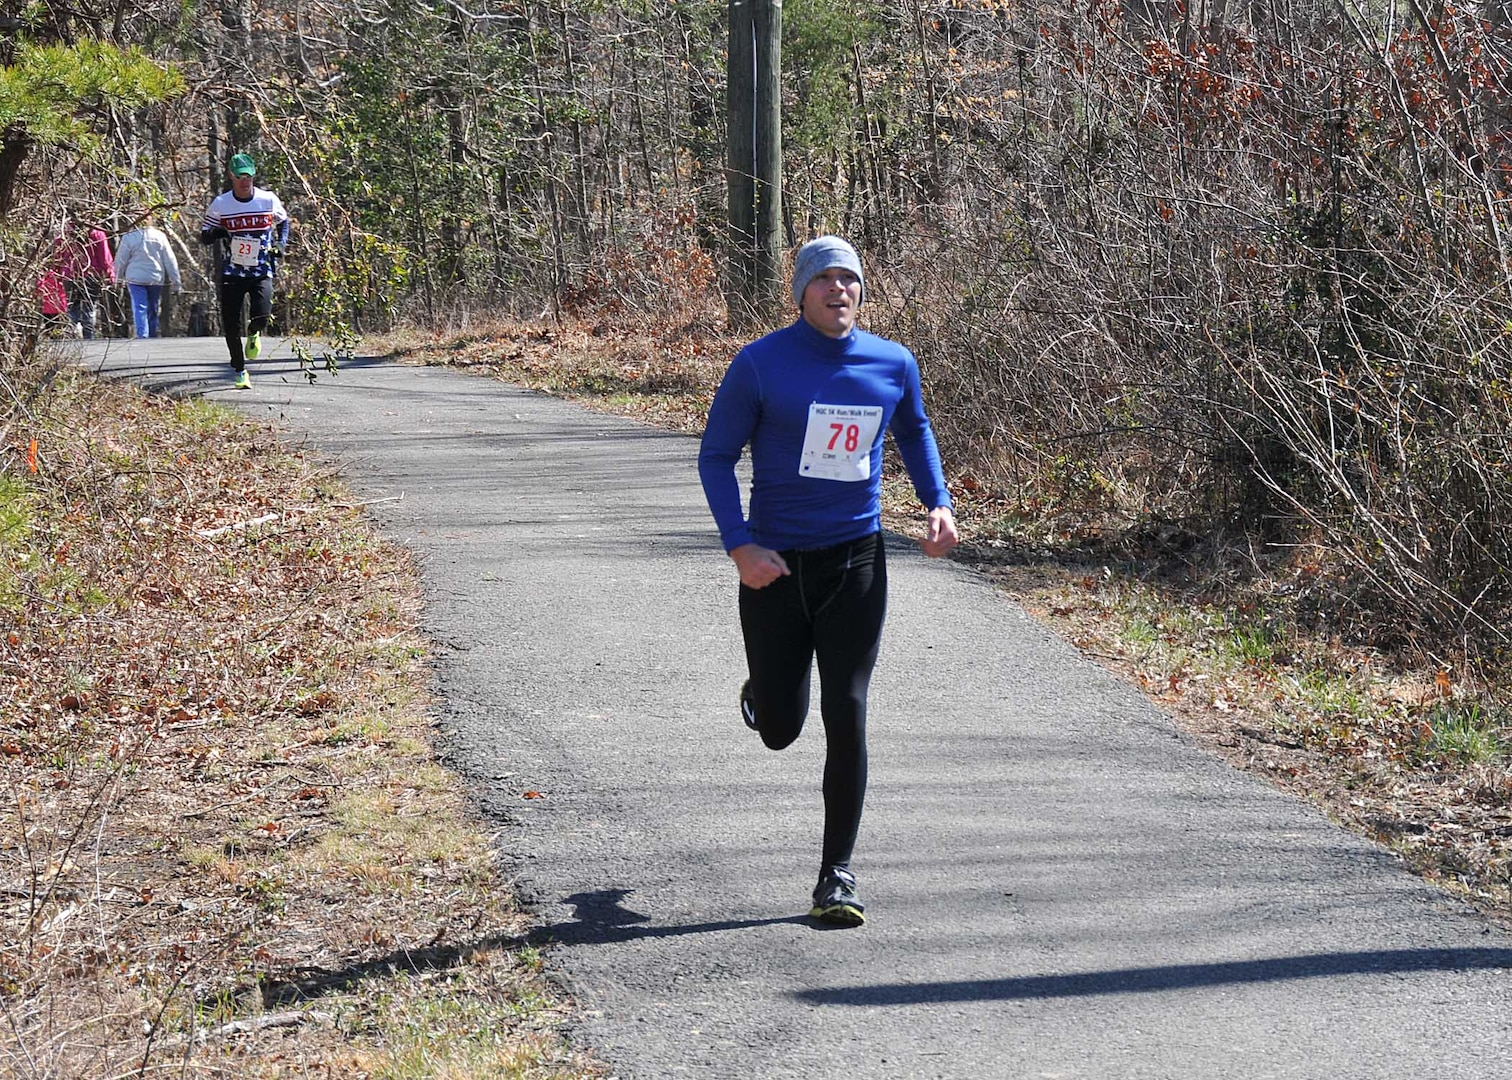 DLA Energy's Alex Cano was first among male runners.